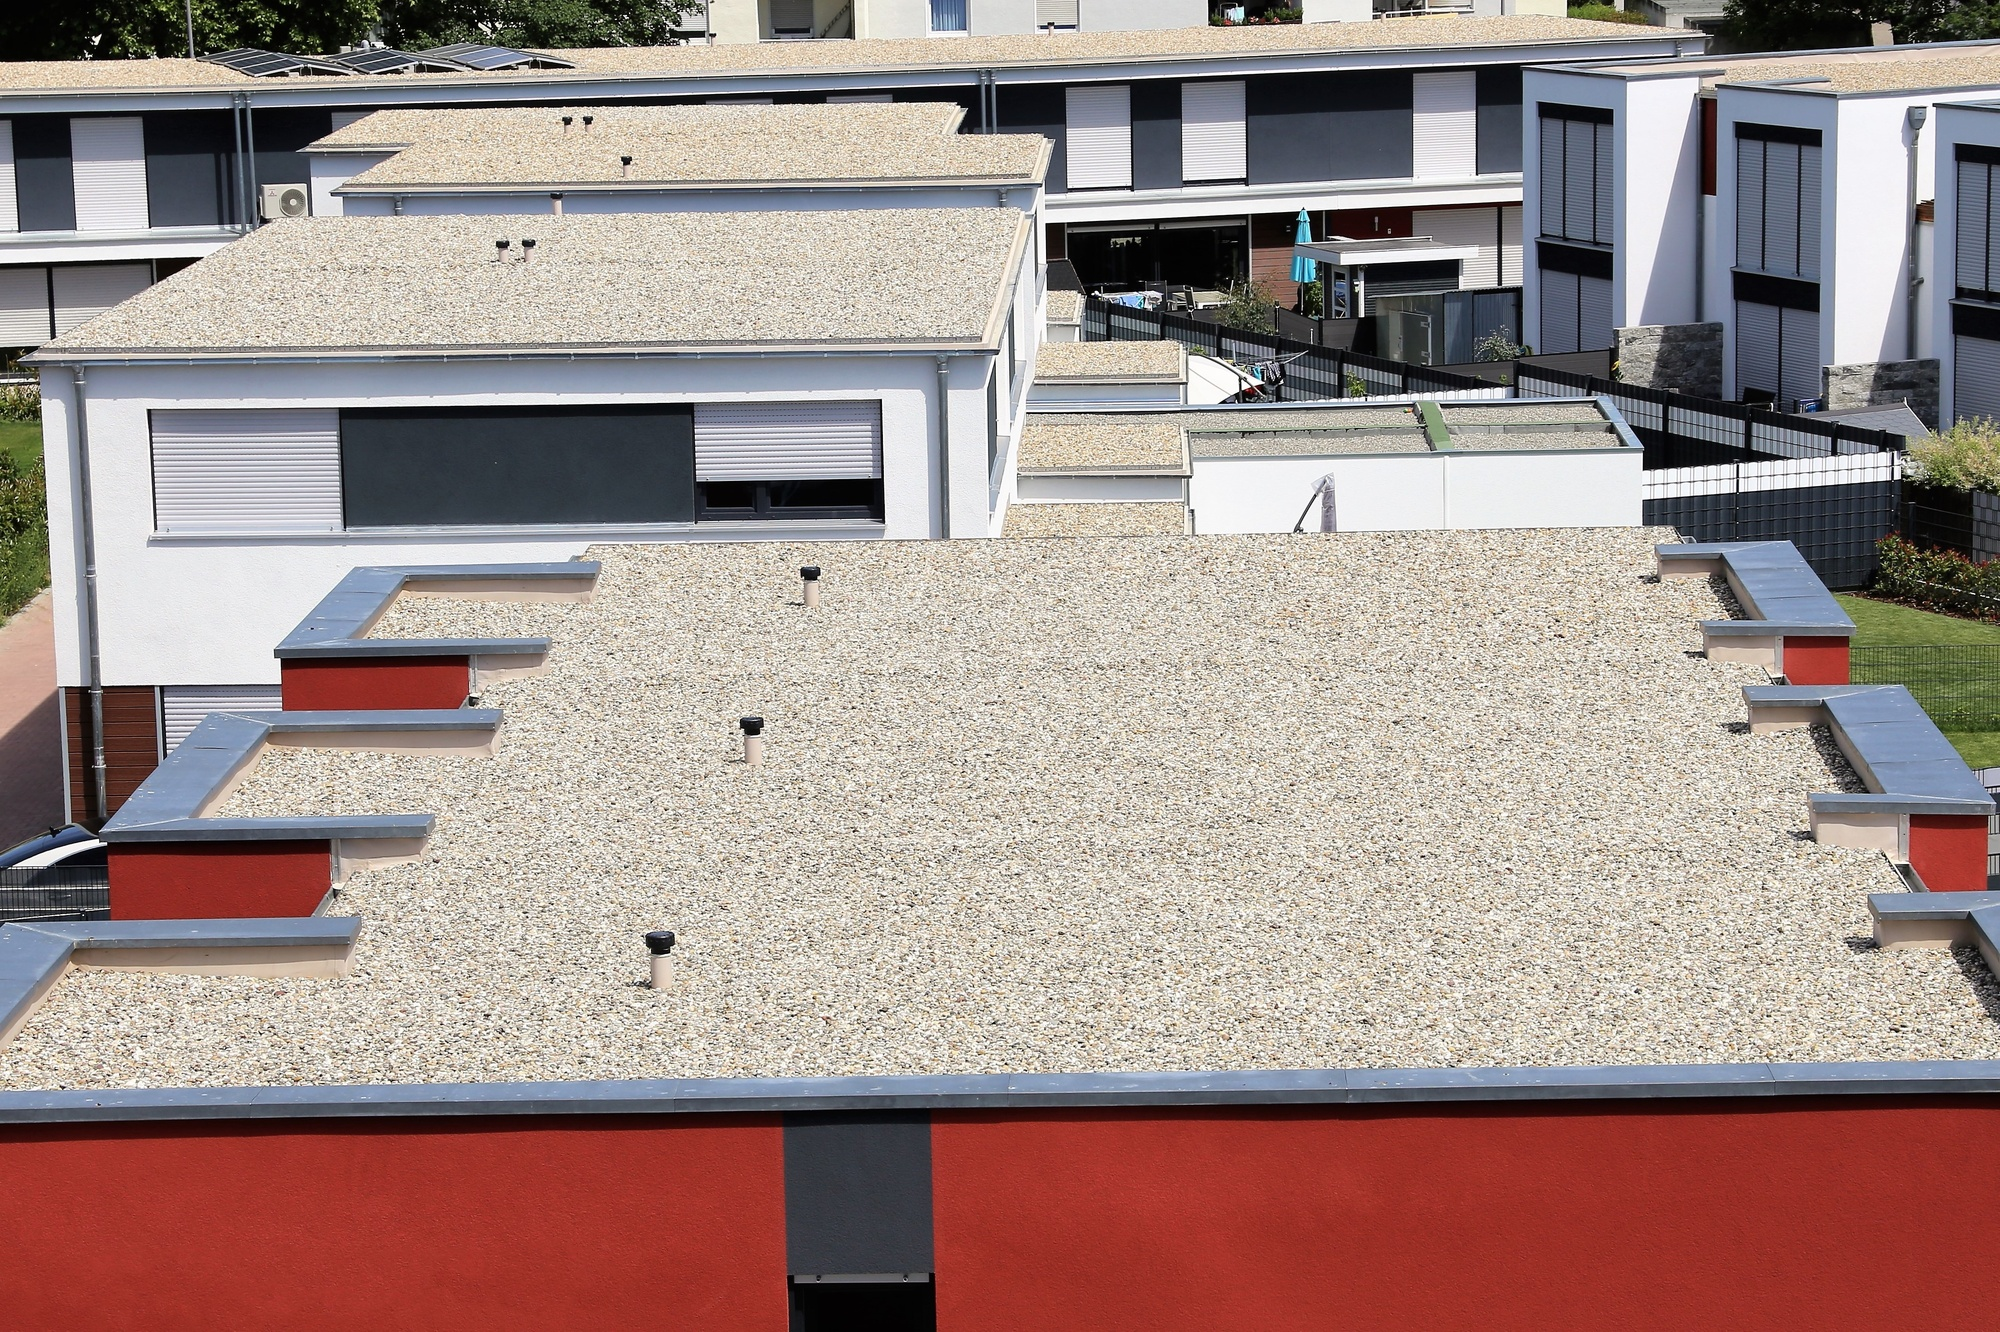 Flat Roof Contractors: The Benefits of Installing a Flat Roof